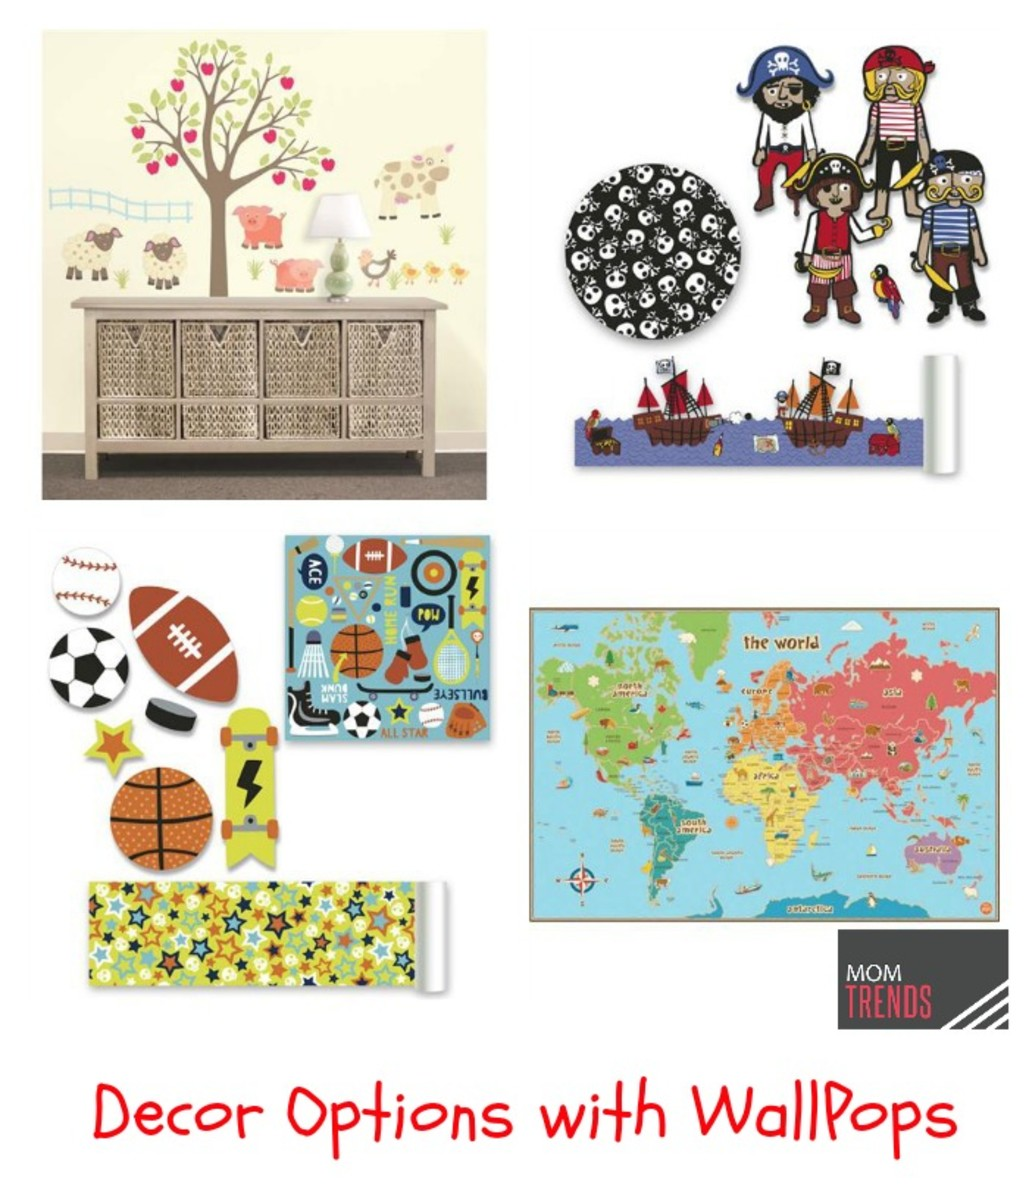 Decor Options with WallPops.jpg